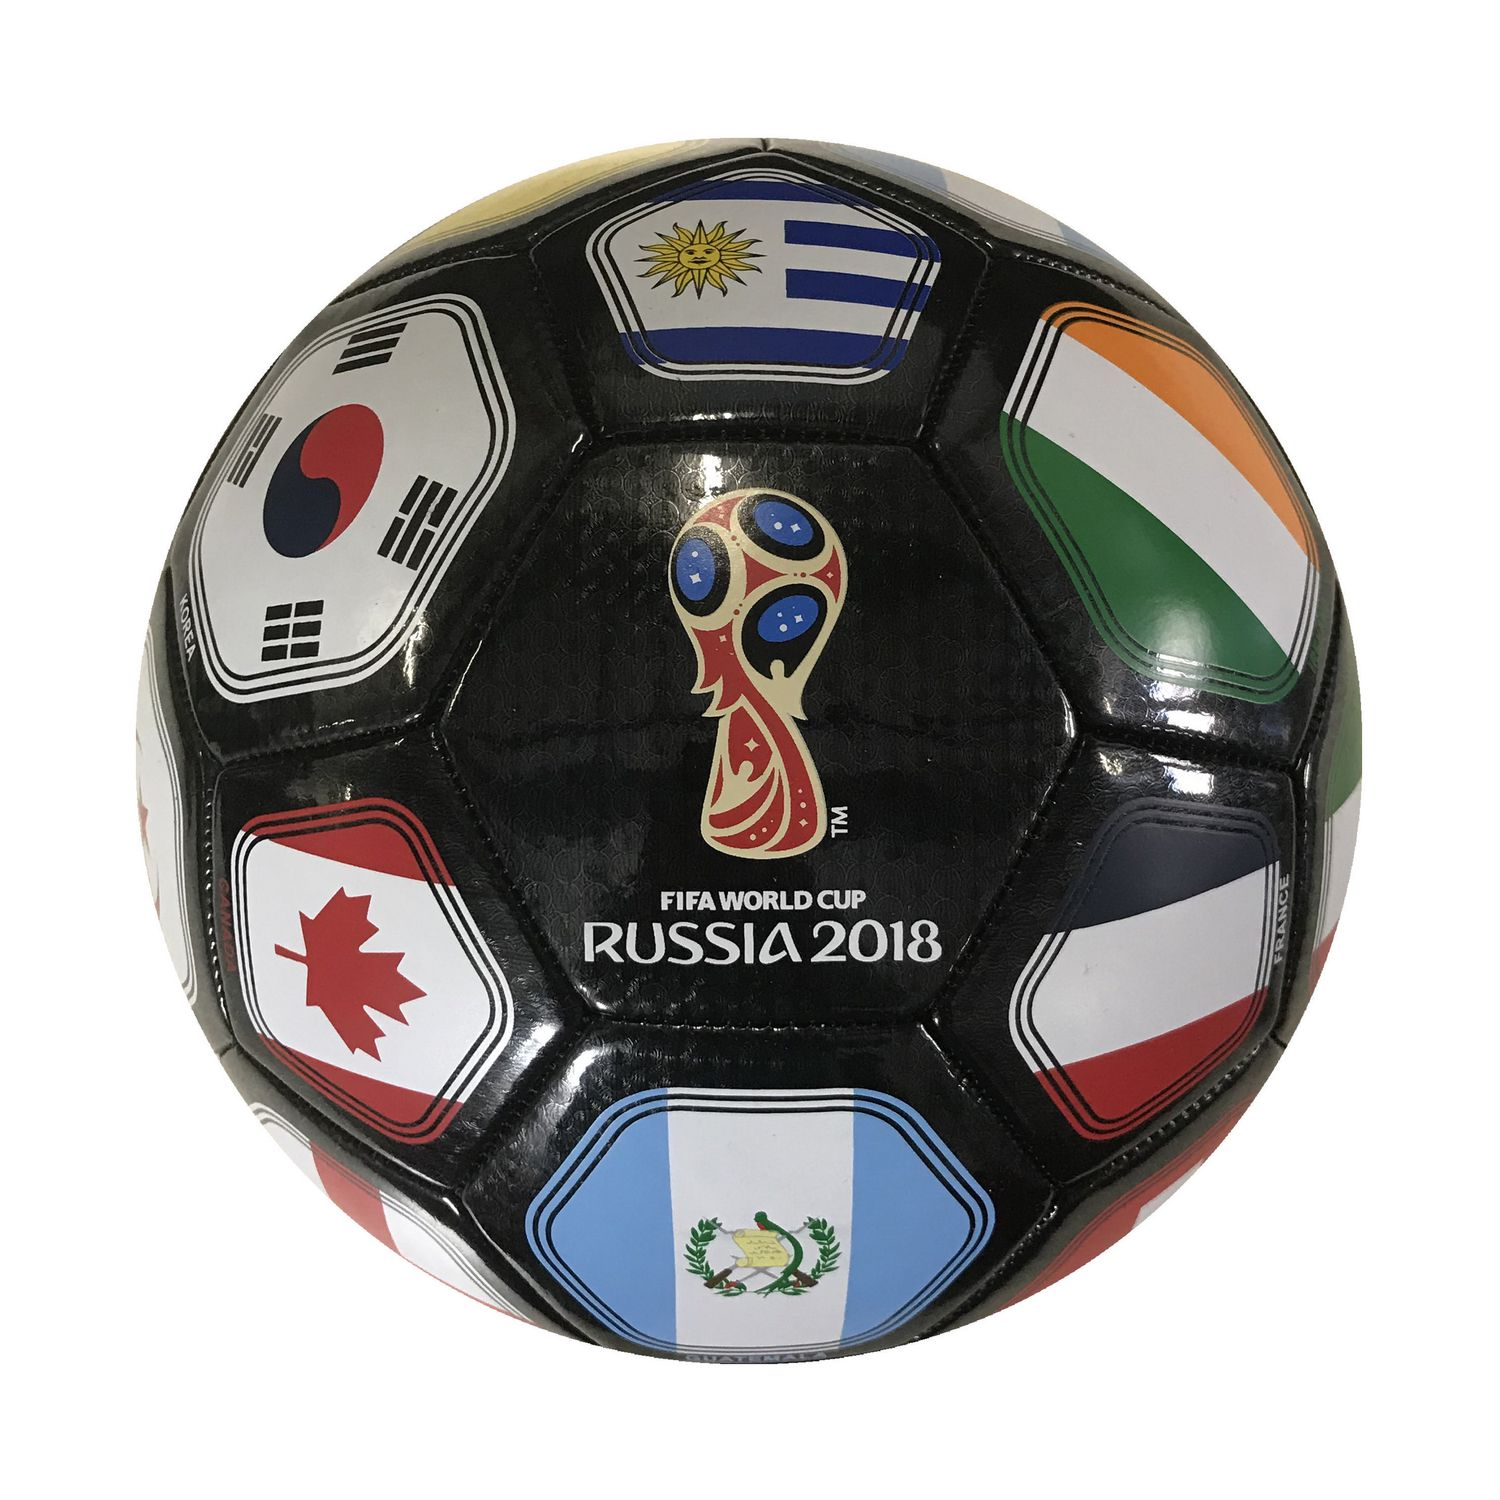 FIFA 2018 World Cup Russia Souvenir Size 5 Soccer Ball - White - image 1 of  zoomed image 41223519c299